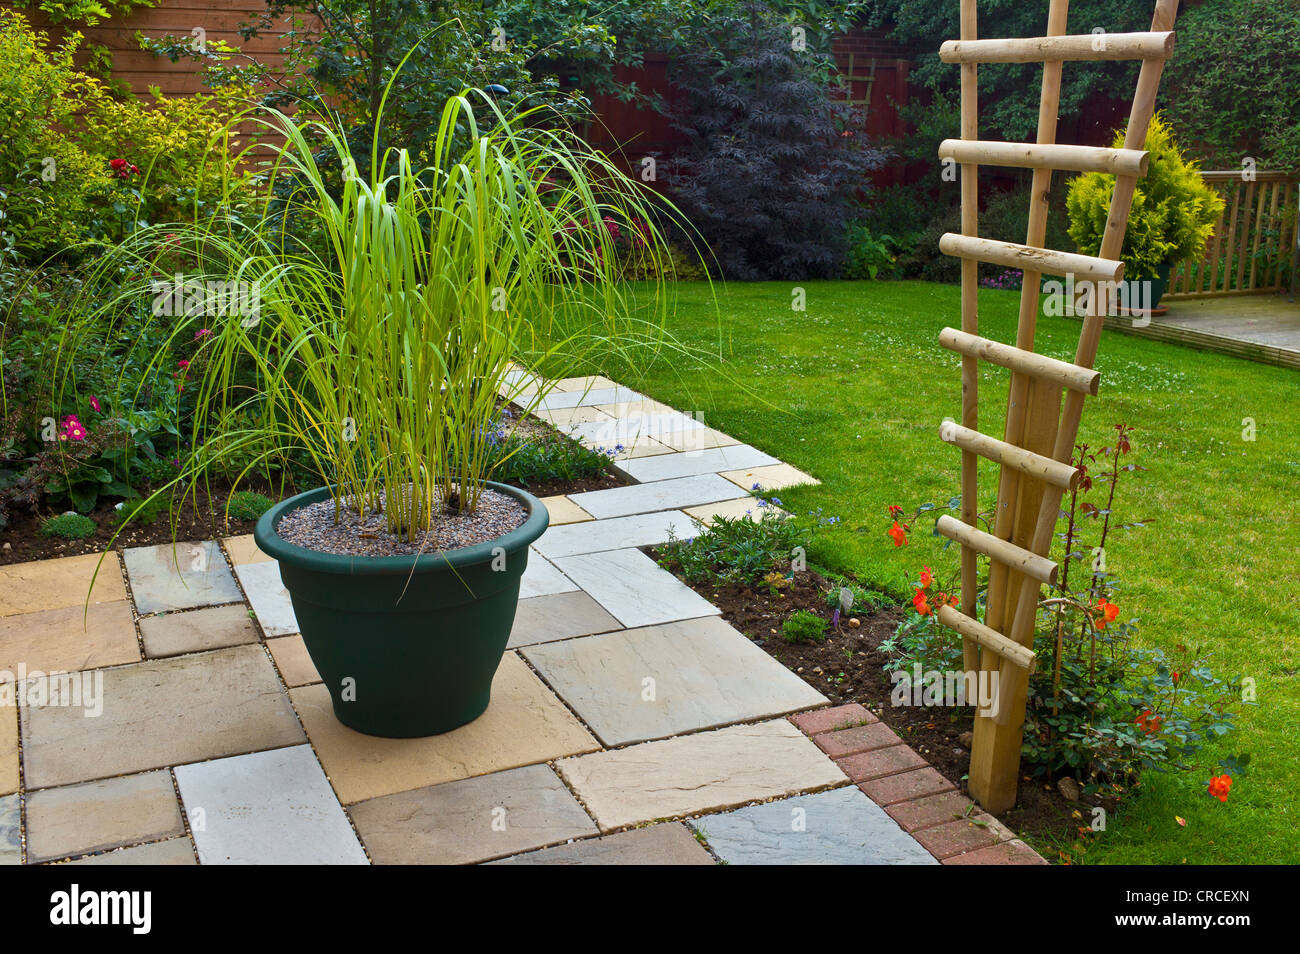 Small garden patio with large pot of ornamental grasses stock photo small garden patio with large pot of ornamental grasses workwithnaturefo